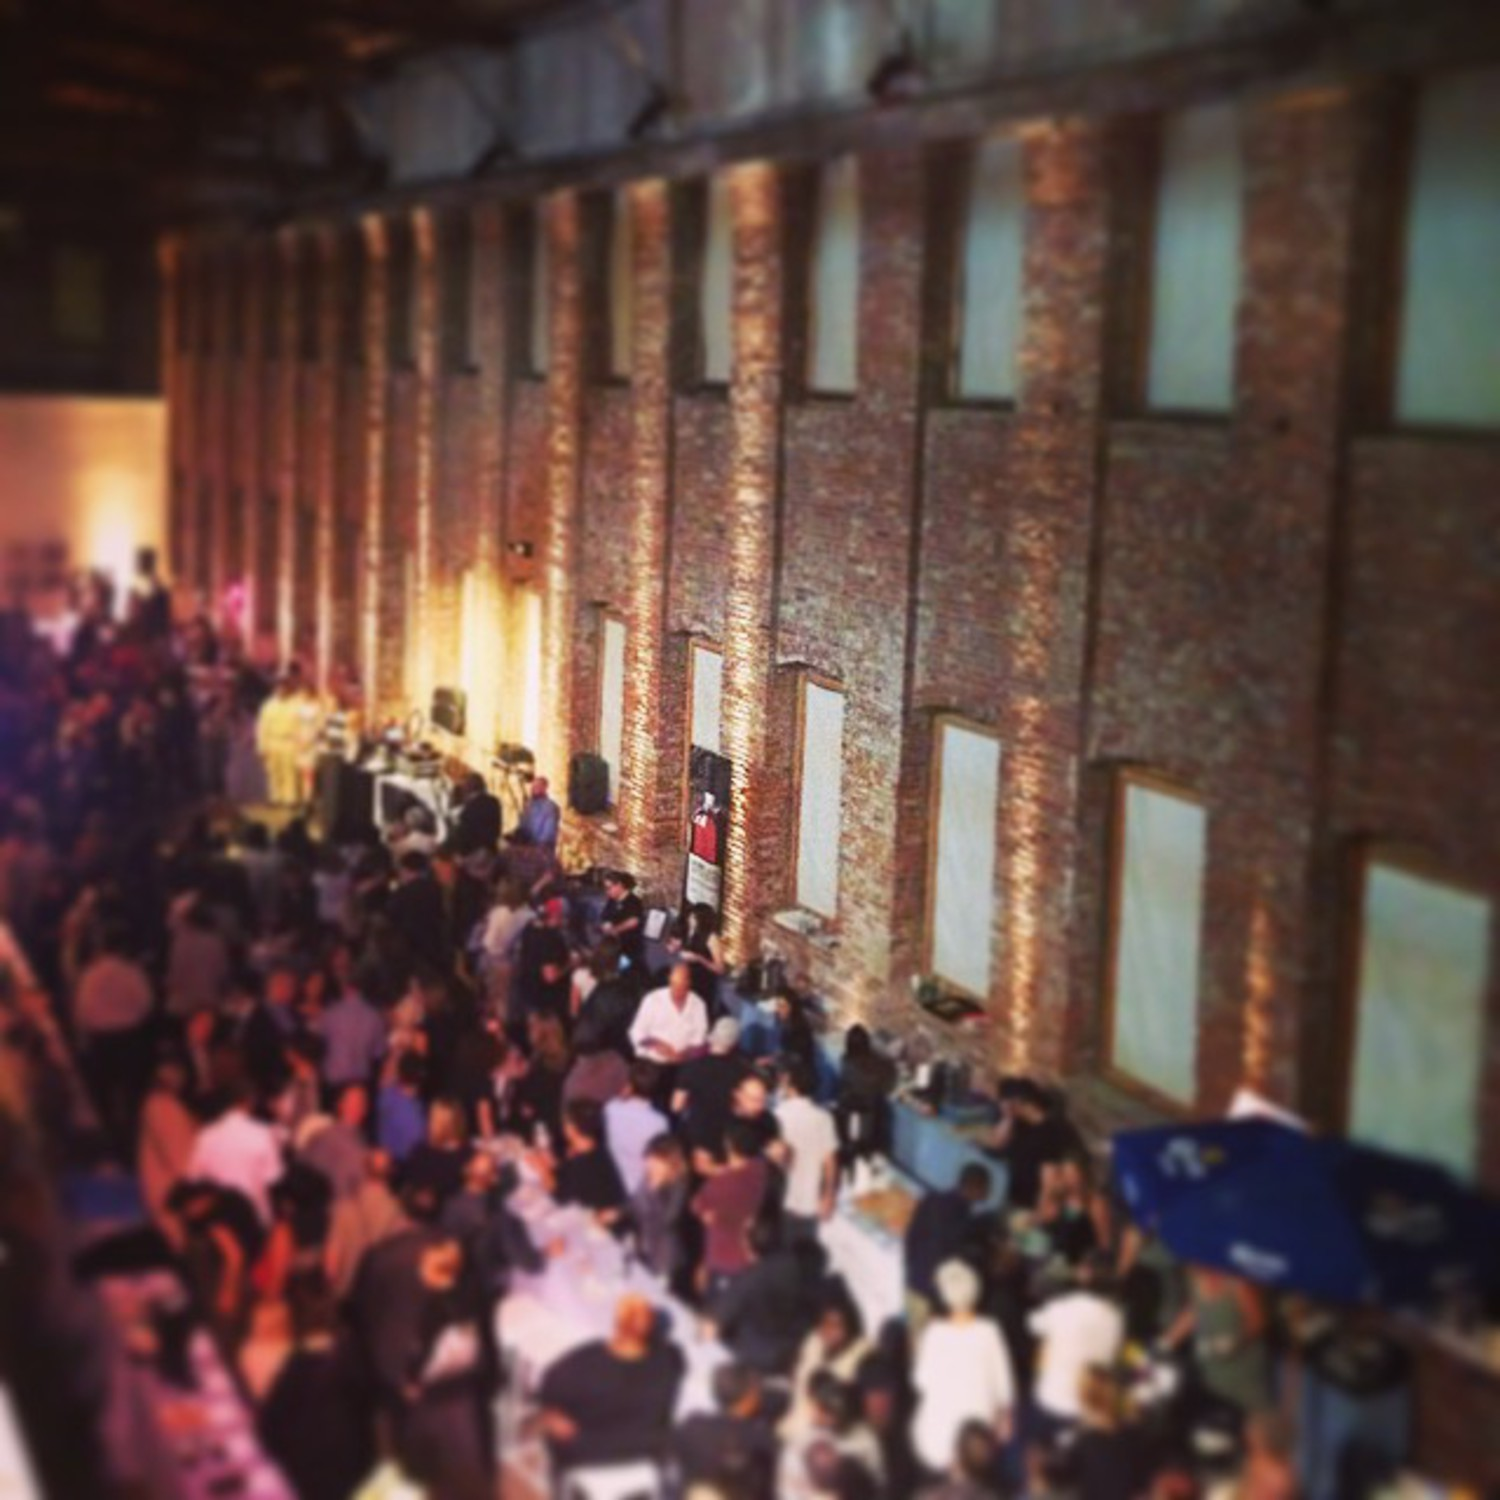 Another year of deliciousness with  @rhookinitiative's #tasteofredhook  @pioneerworks #fullbelly #yummiinmatummy